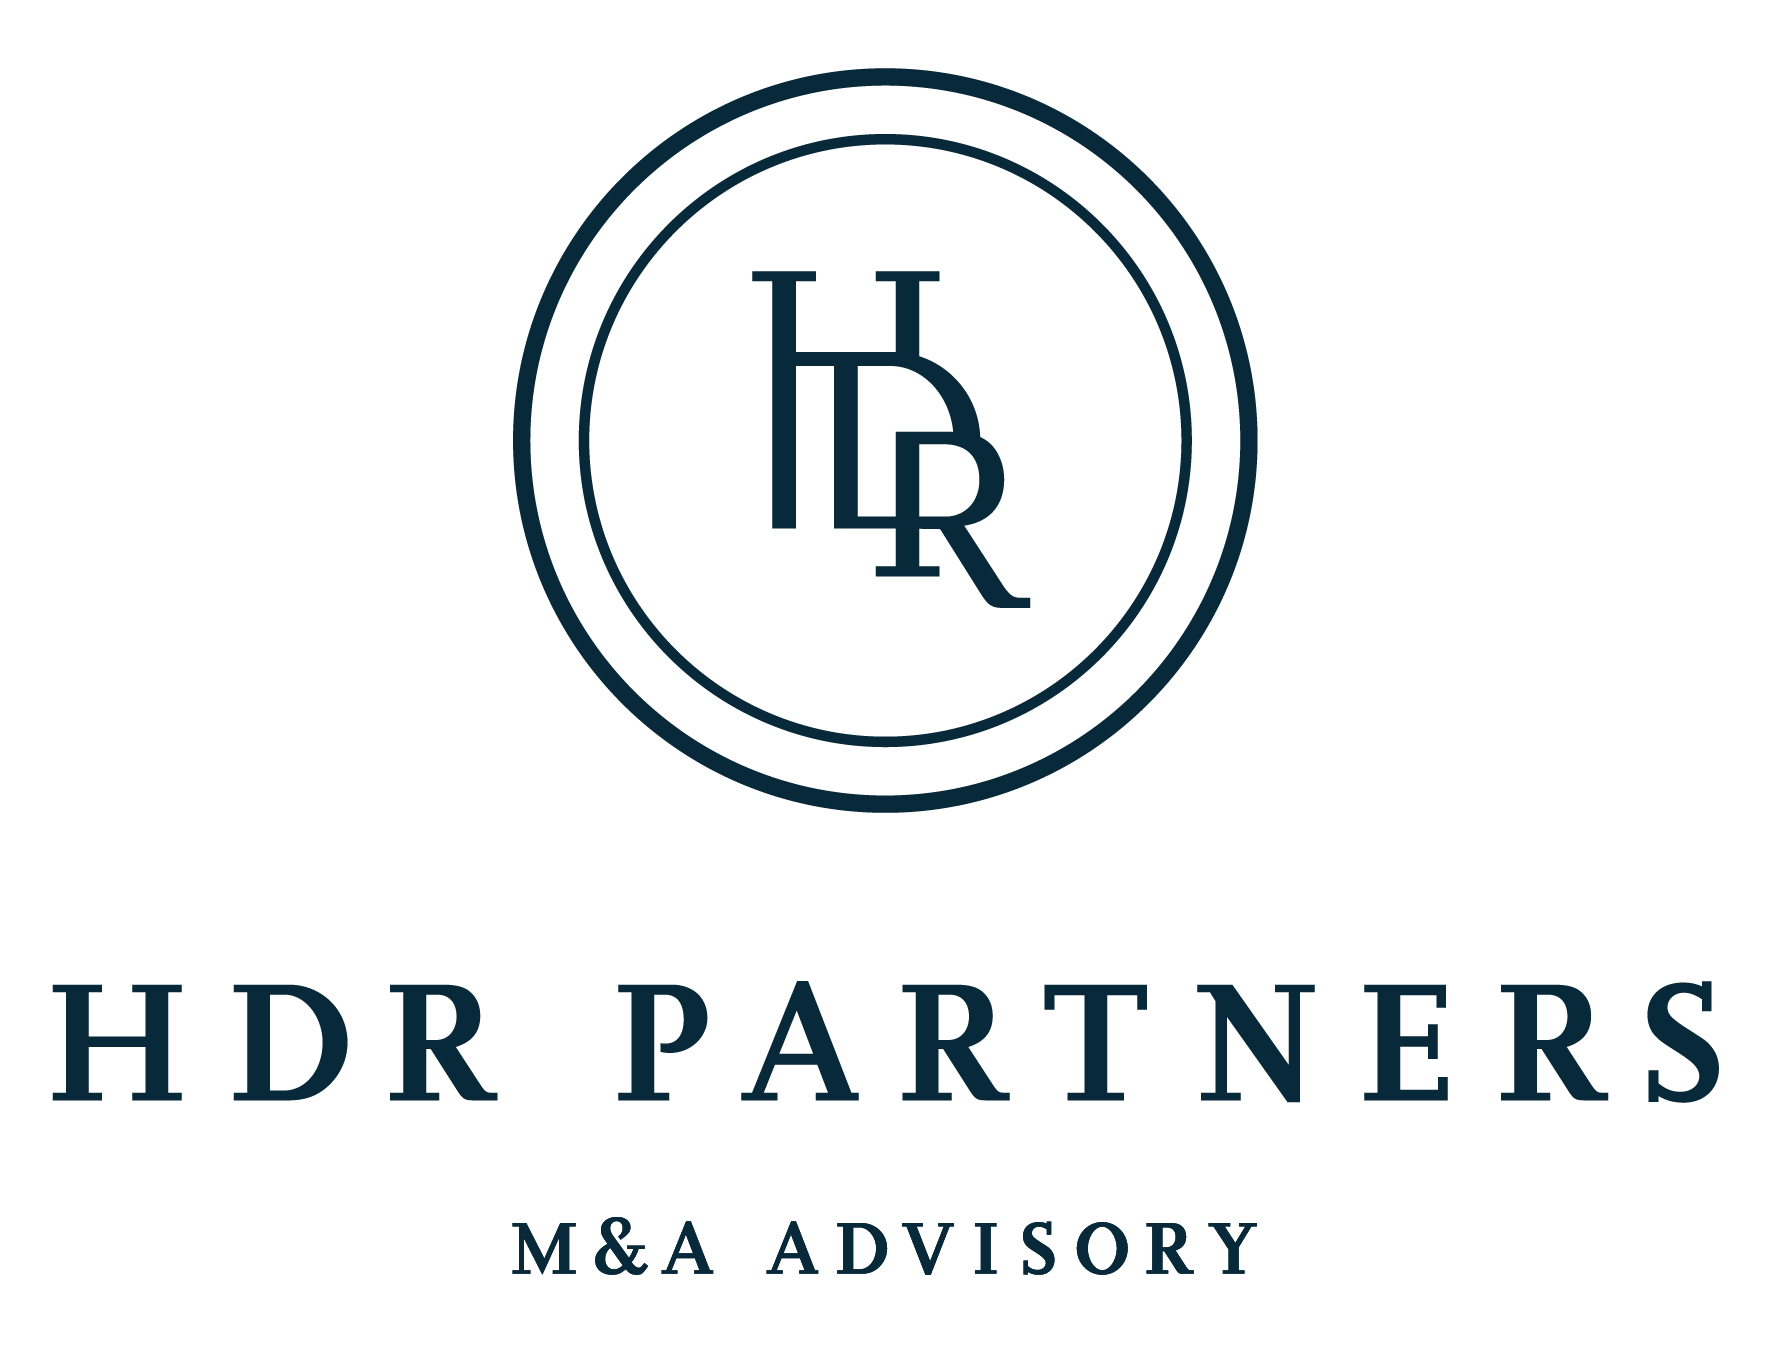 HDR Partners